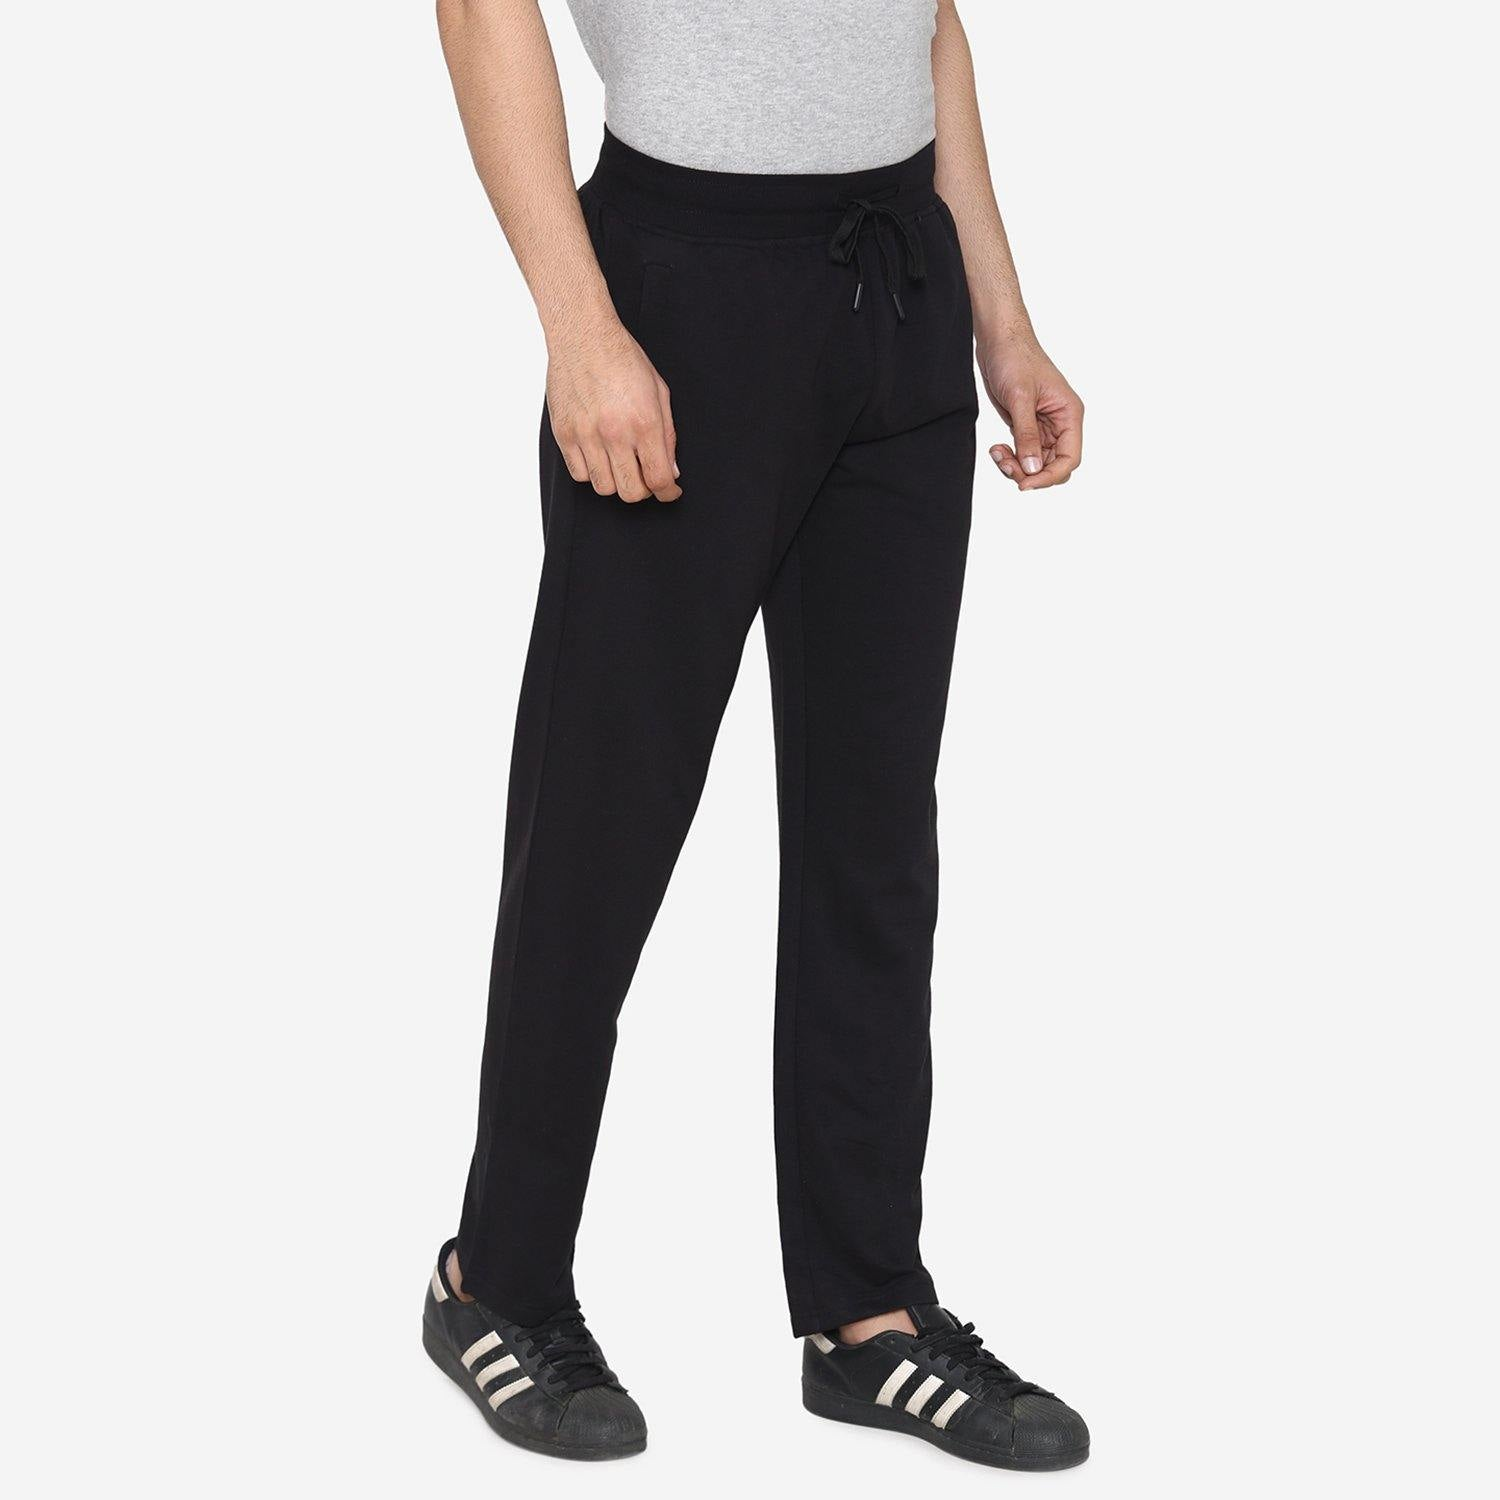 Men's Plain Casual Wear Track Pant